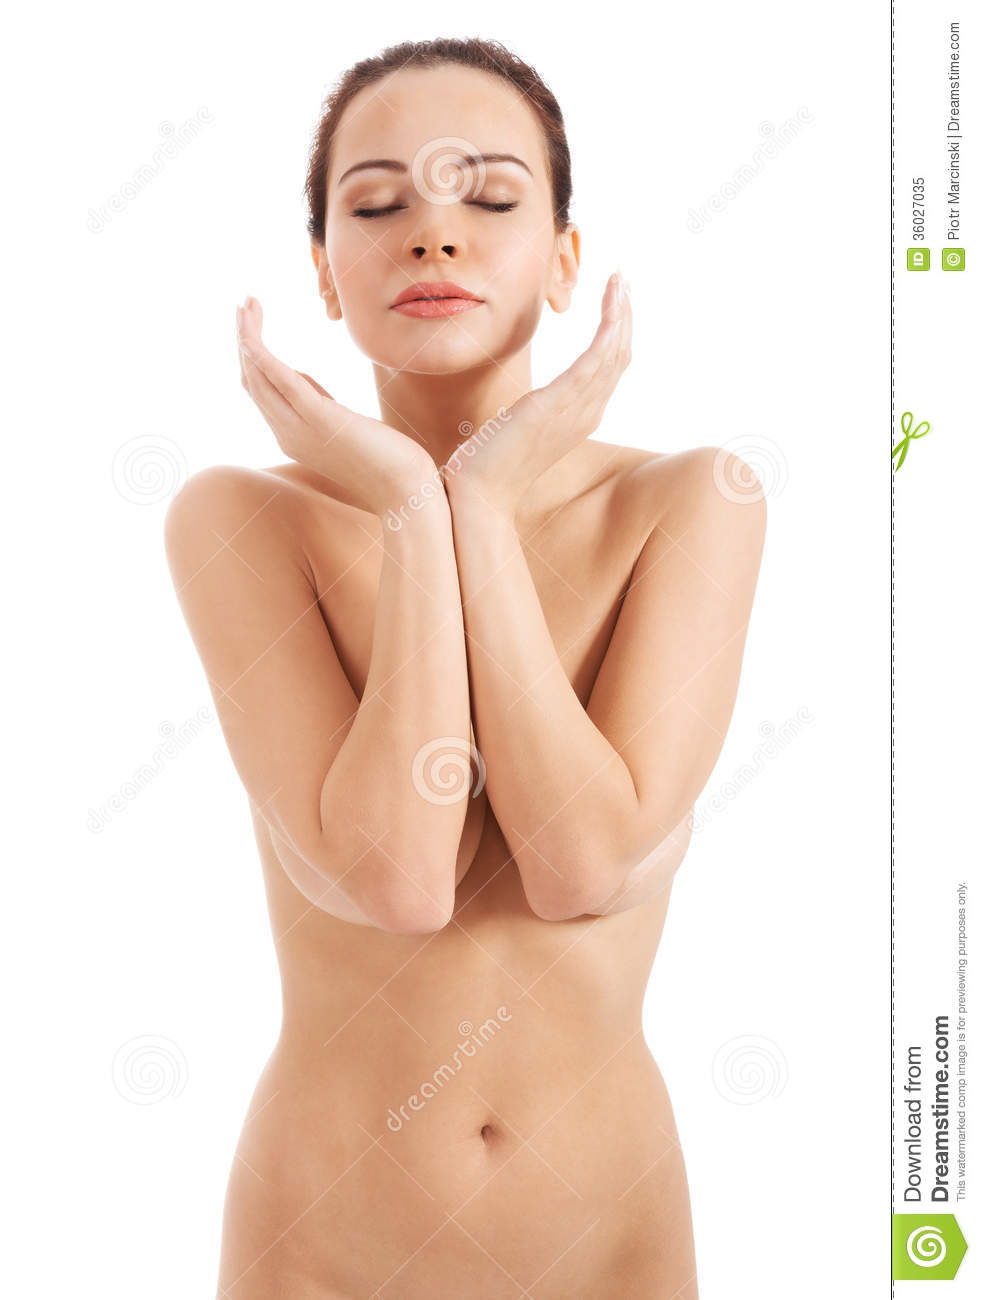 girl naked hands by her face